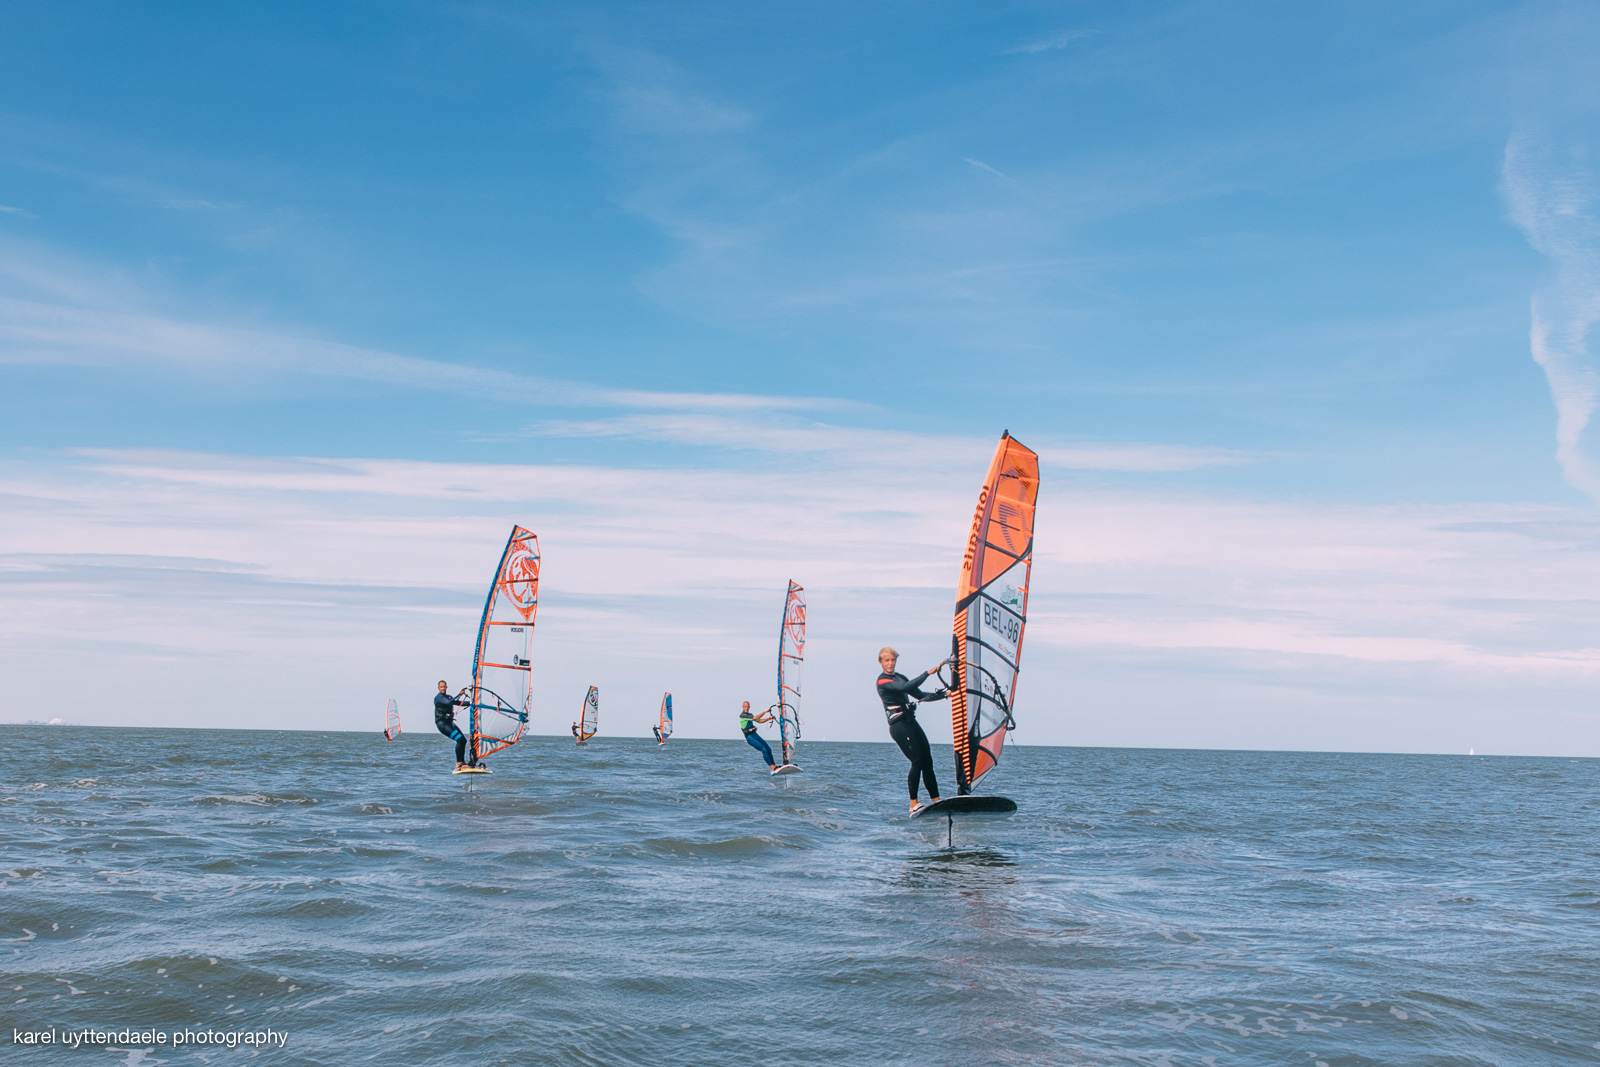 Windfoiling - Windekind - Aug '18